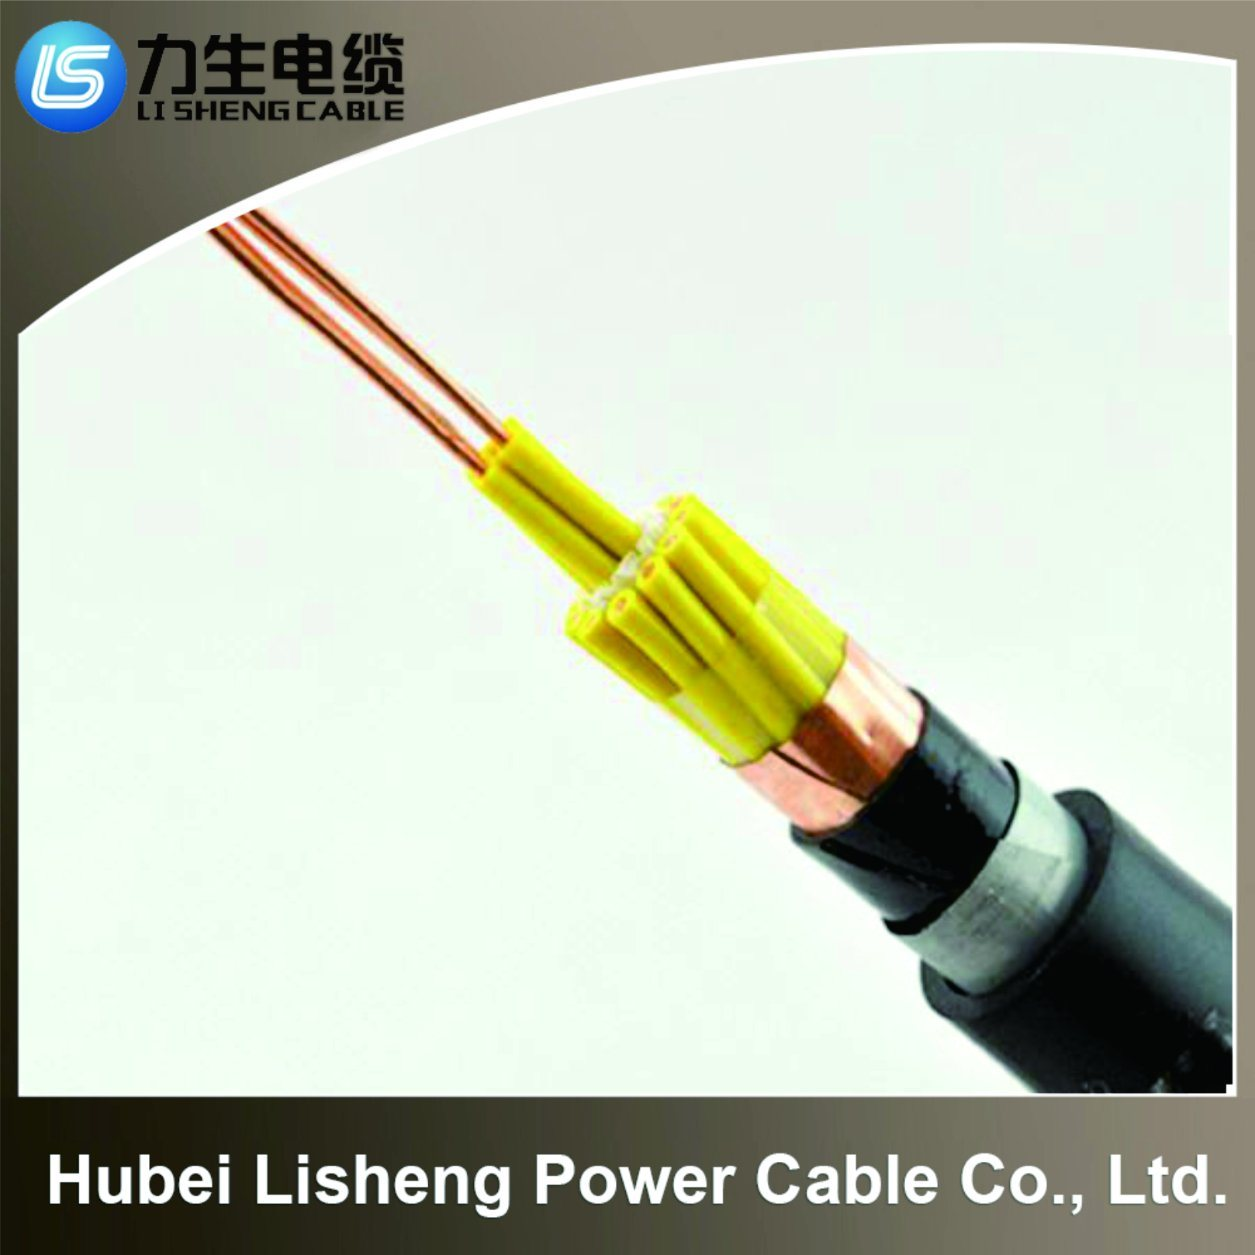 Wholesale Pvc Wire Cable Buy Reliable From Electric Wirepvc Coated Copper Factory 450 750v Insulated Braided Shielded Control